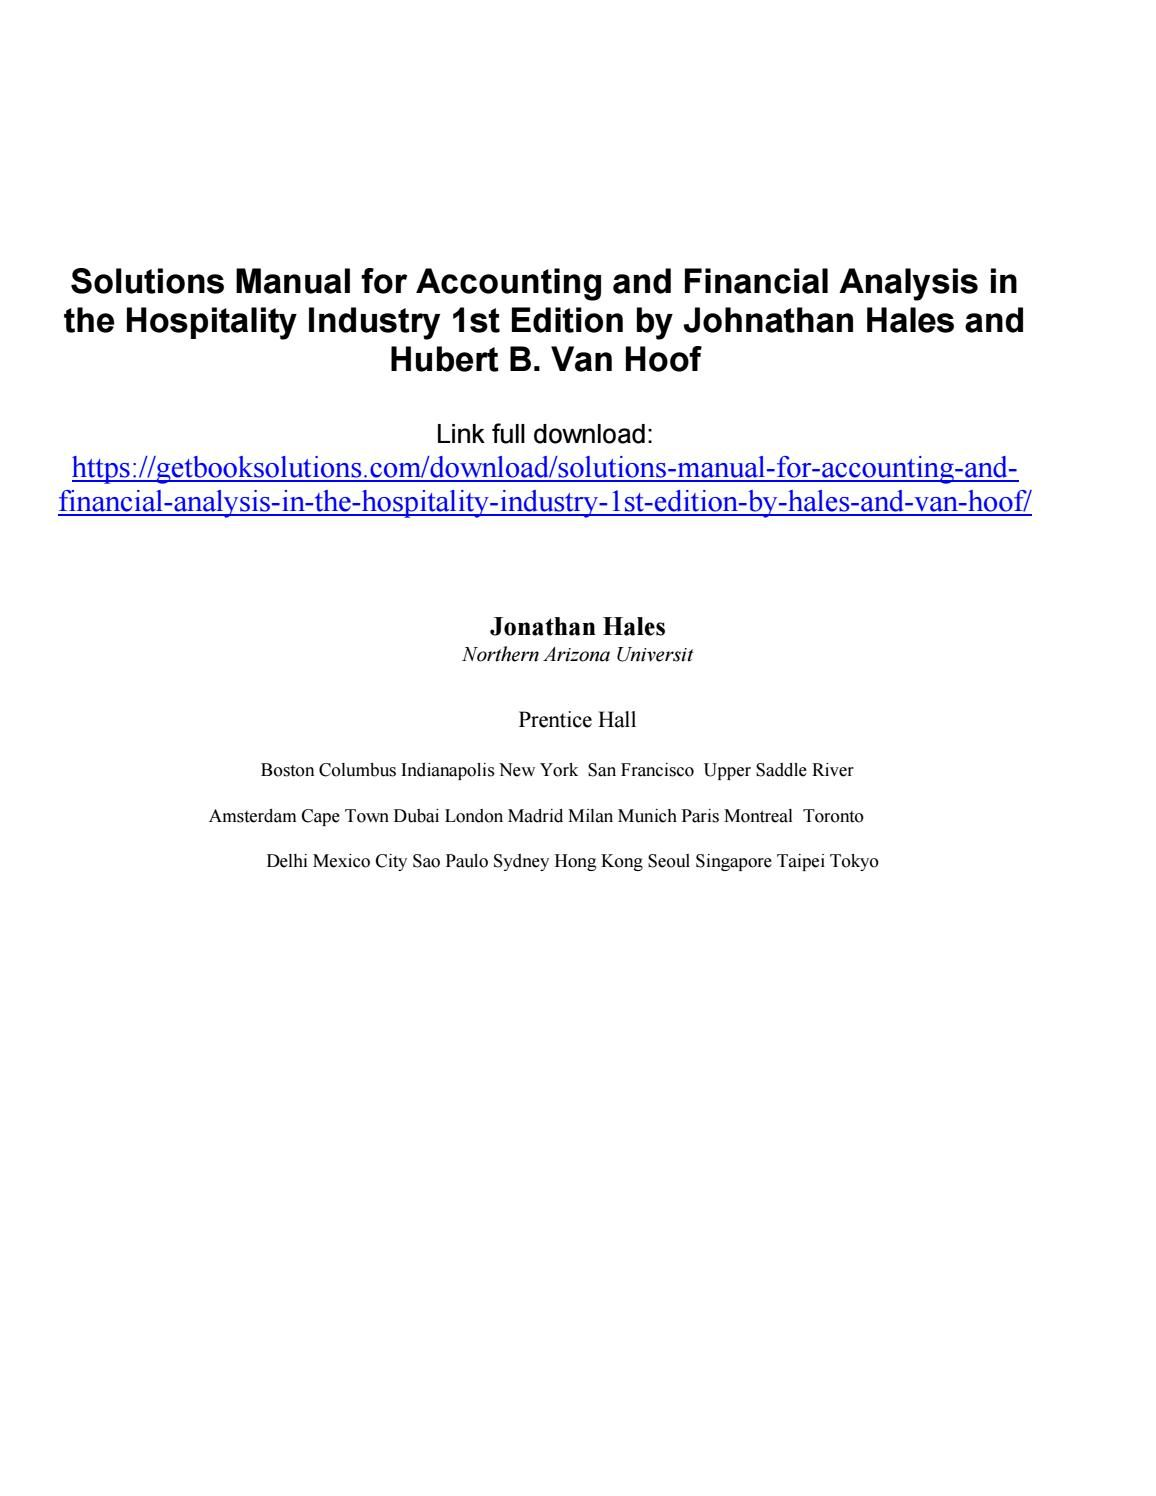 Solutions manual for accounting and financial analysis in the hospitality  industry 1st edition by ha